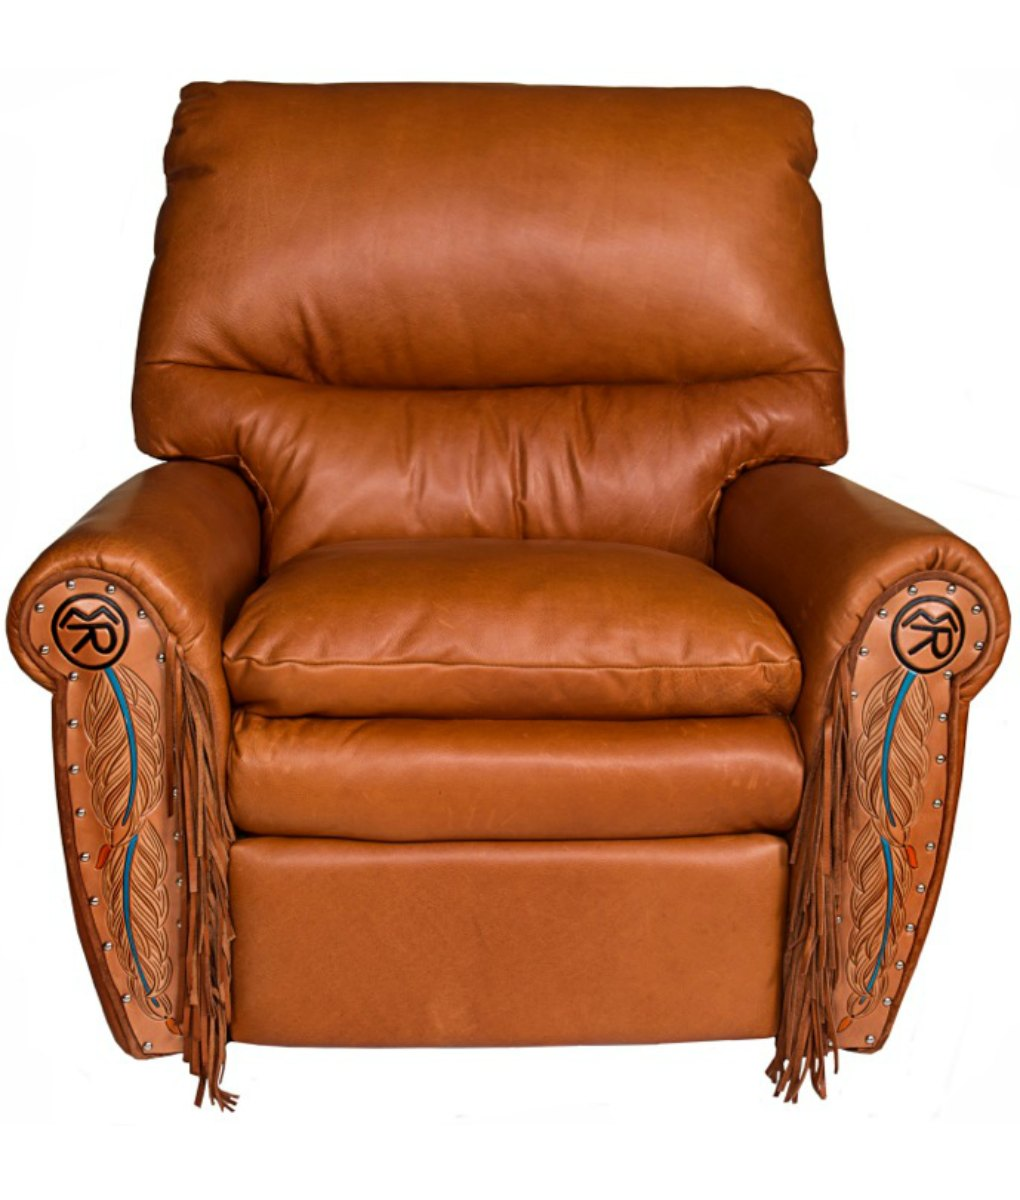 Western Recliner The Ultimate Recliner: down filled seat and back, lumbar support, leather soft as butter, and can be made in any color leather with your choice of cowhide, tooling, fringe, conchos, brand and more! Truly the most comfortable recliner I've ever sat in.   Western and Rustic Furniture and Decor from RusticArtistry.com